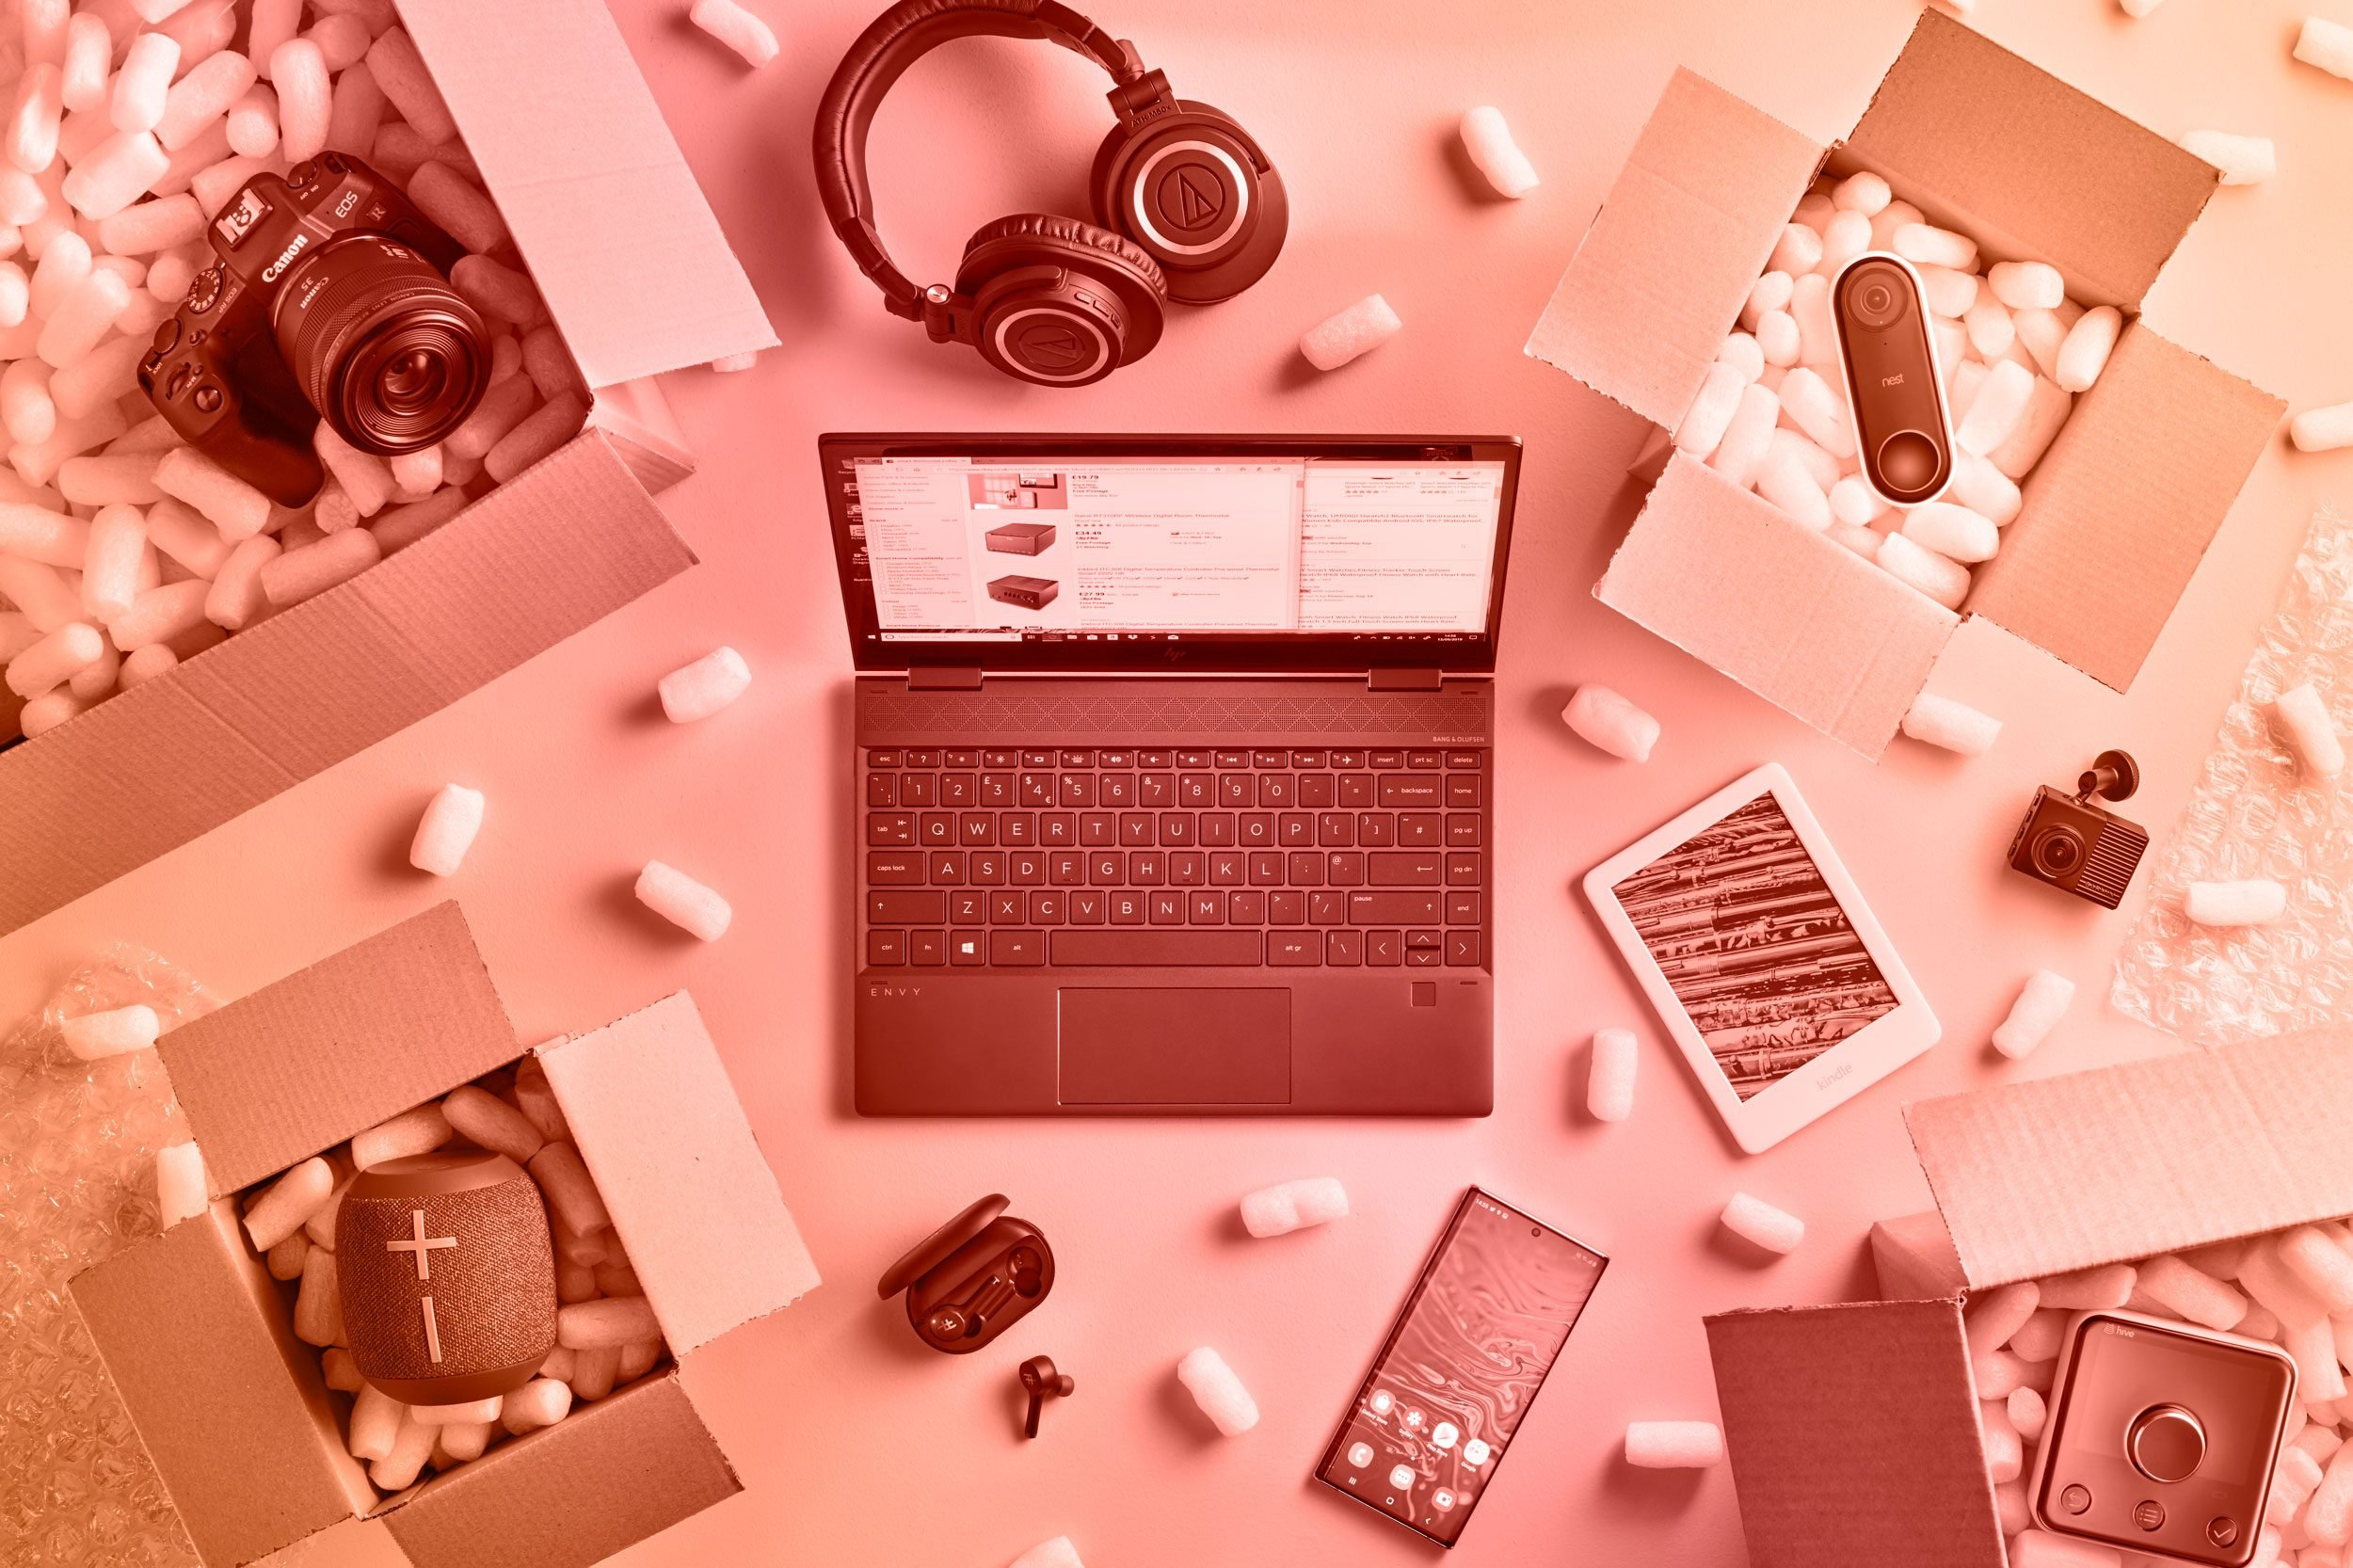 electronics and cardboard boxes with packing peanuts; overhead view